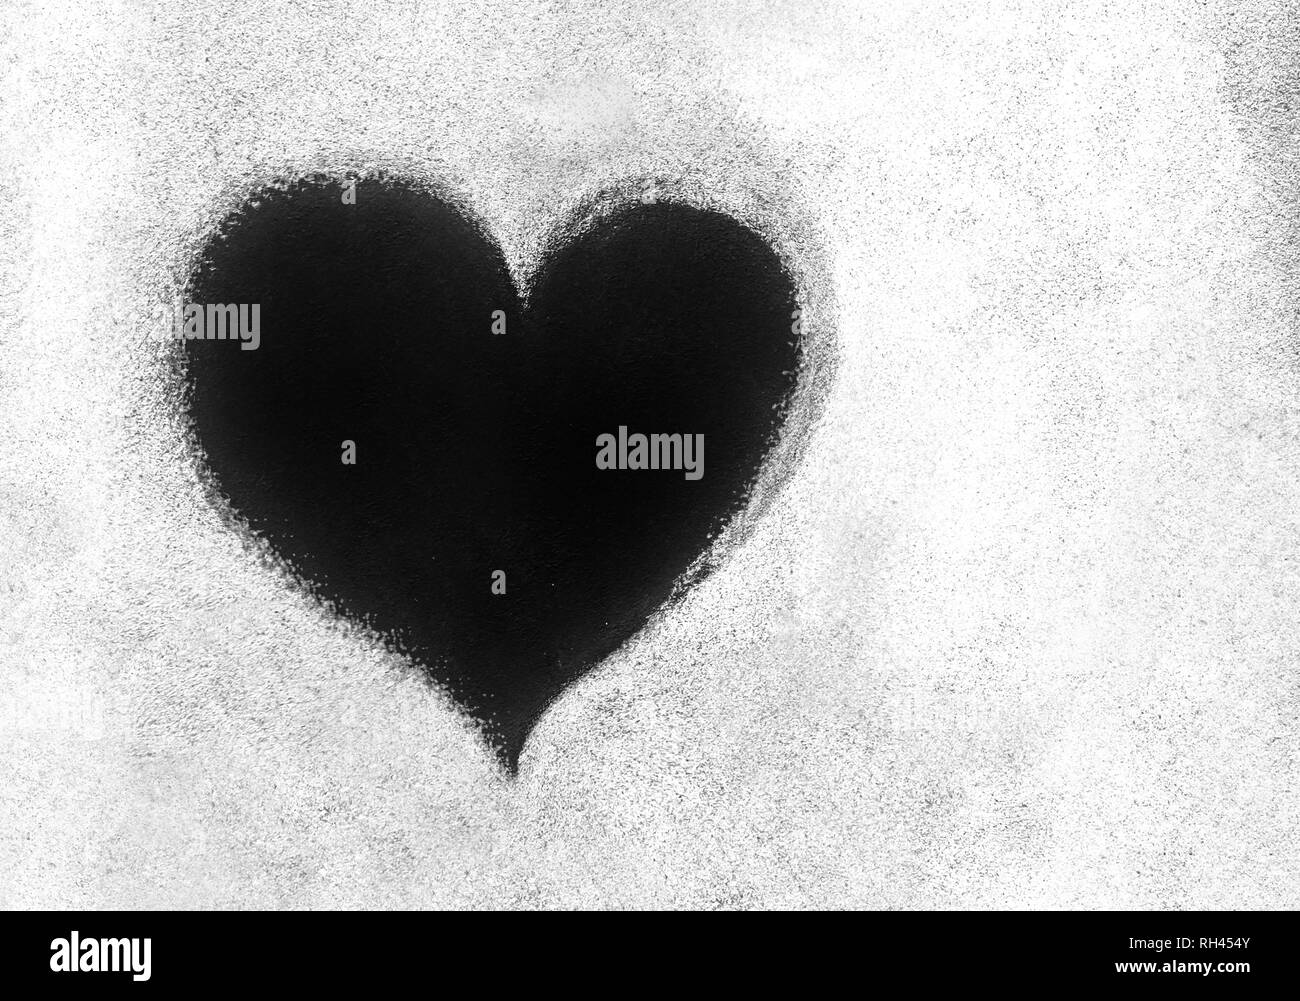 grunge texture with black heart symbol it can be used as a valentines theme poster wallpaper design t shirts and more RH454Y